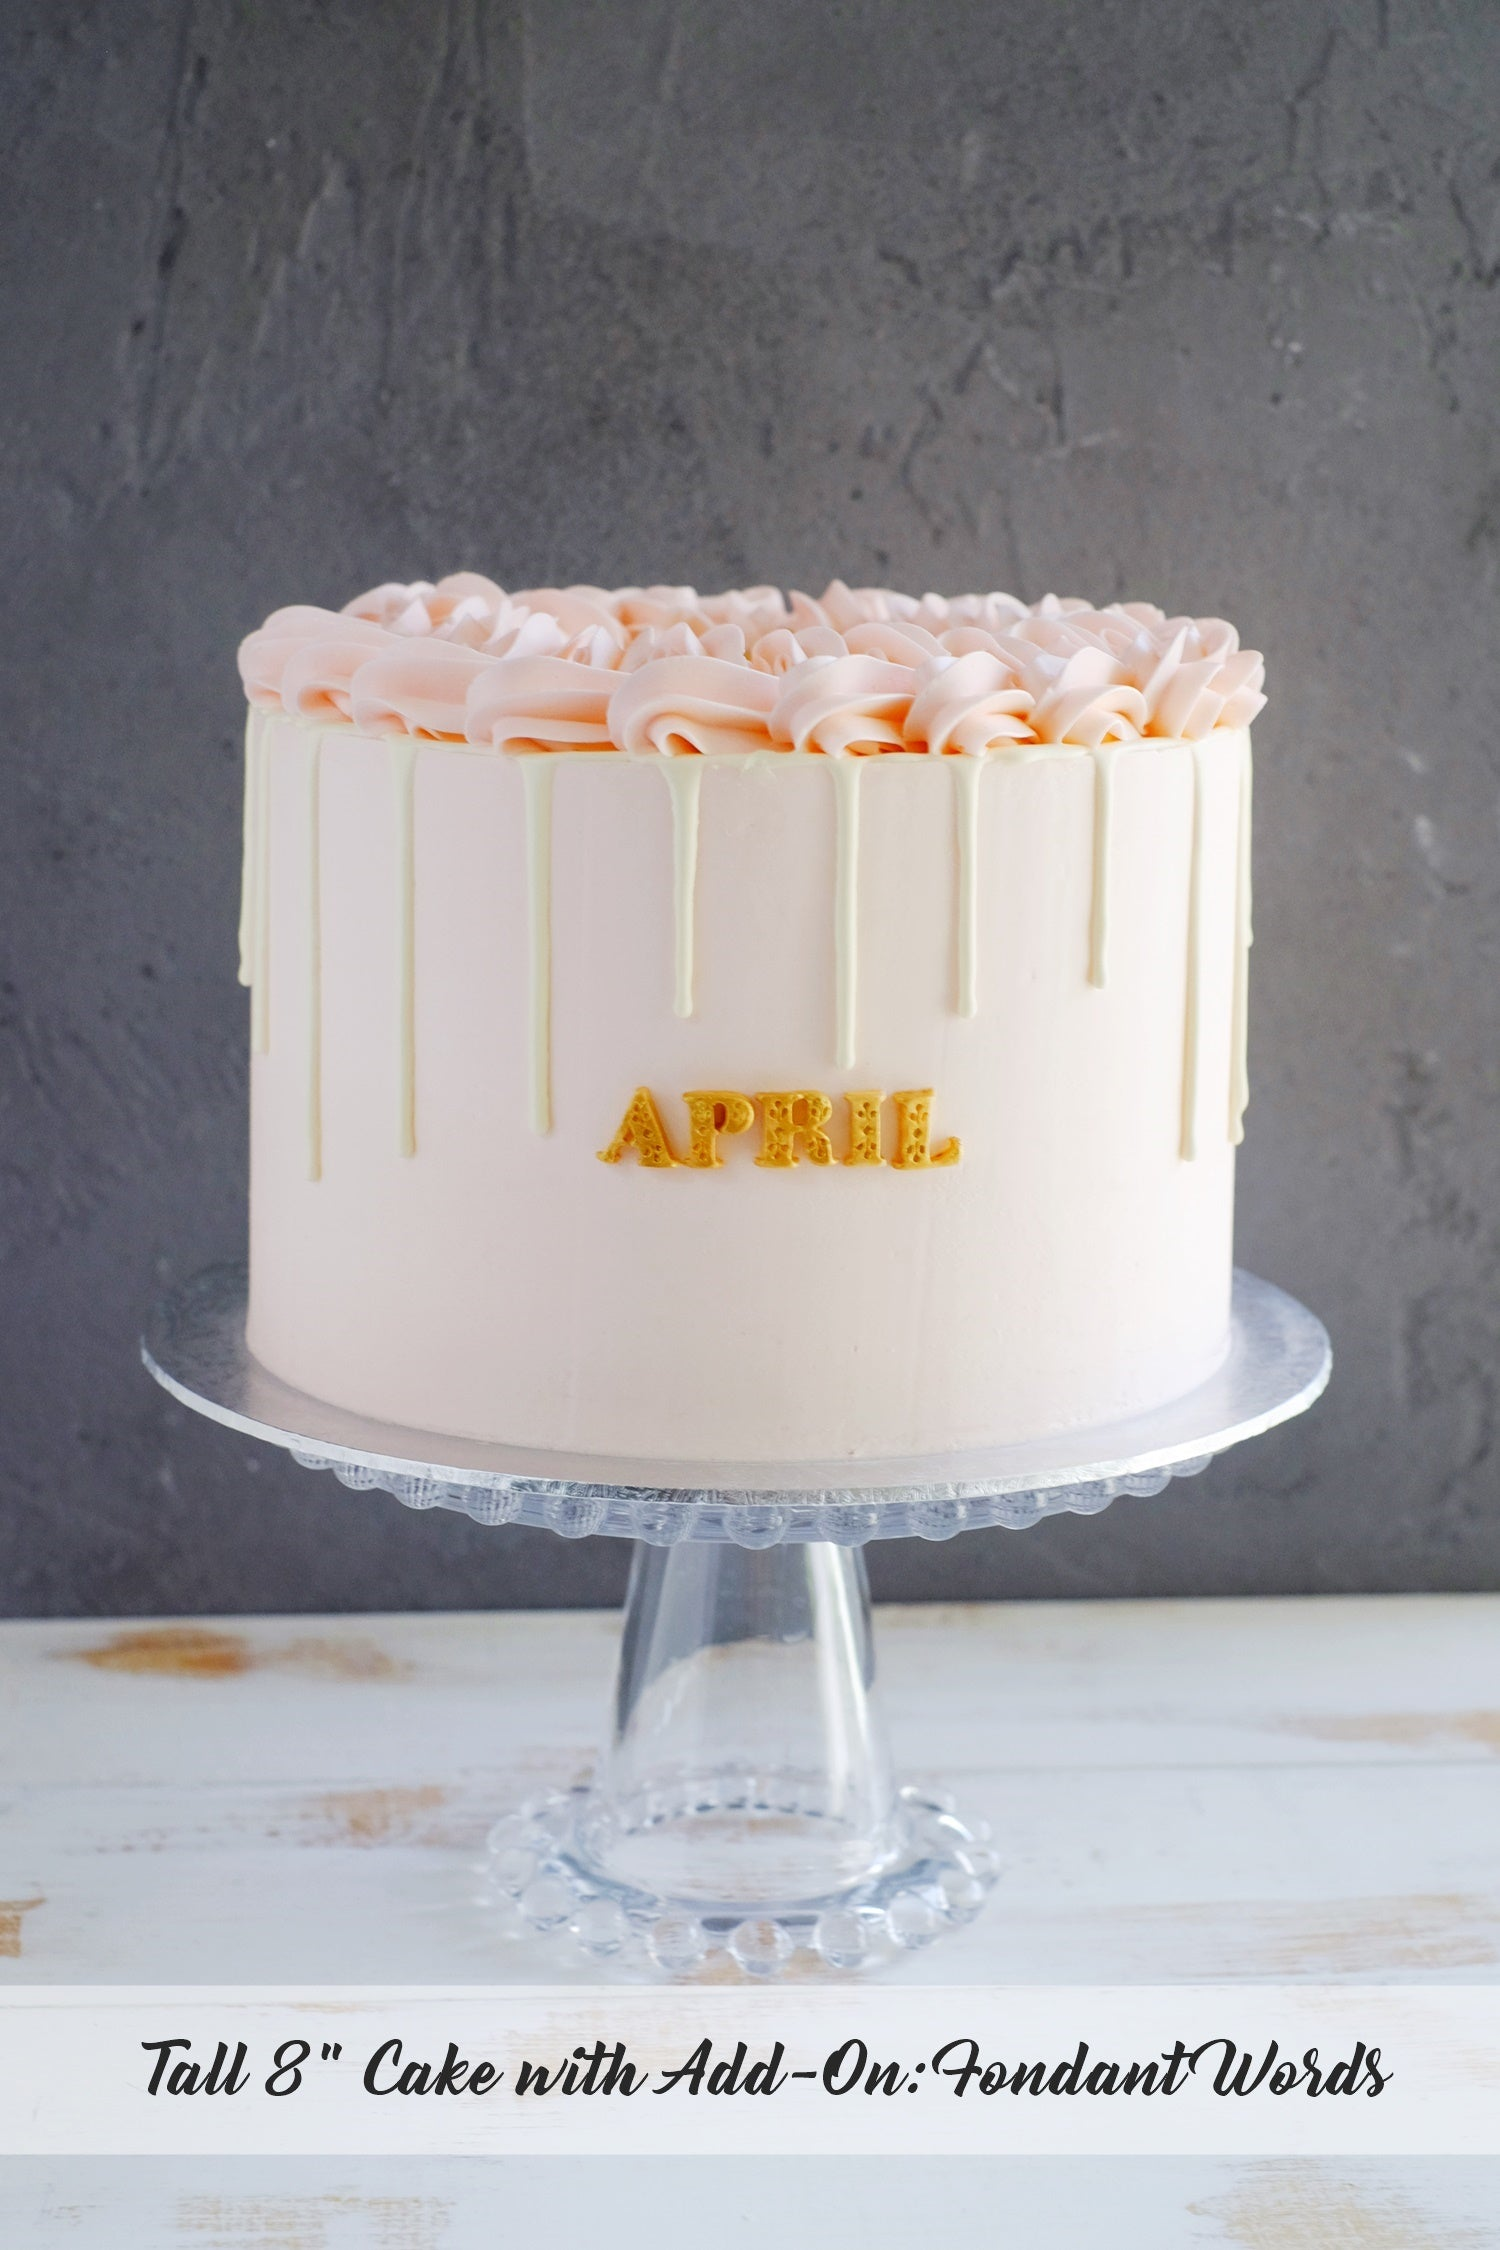 Pastel Pink Cake with White Chocolate Drip